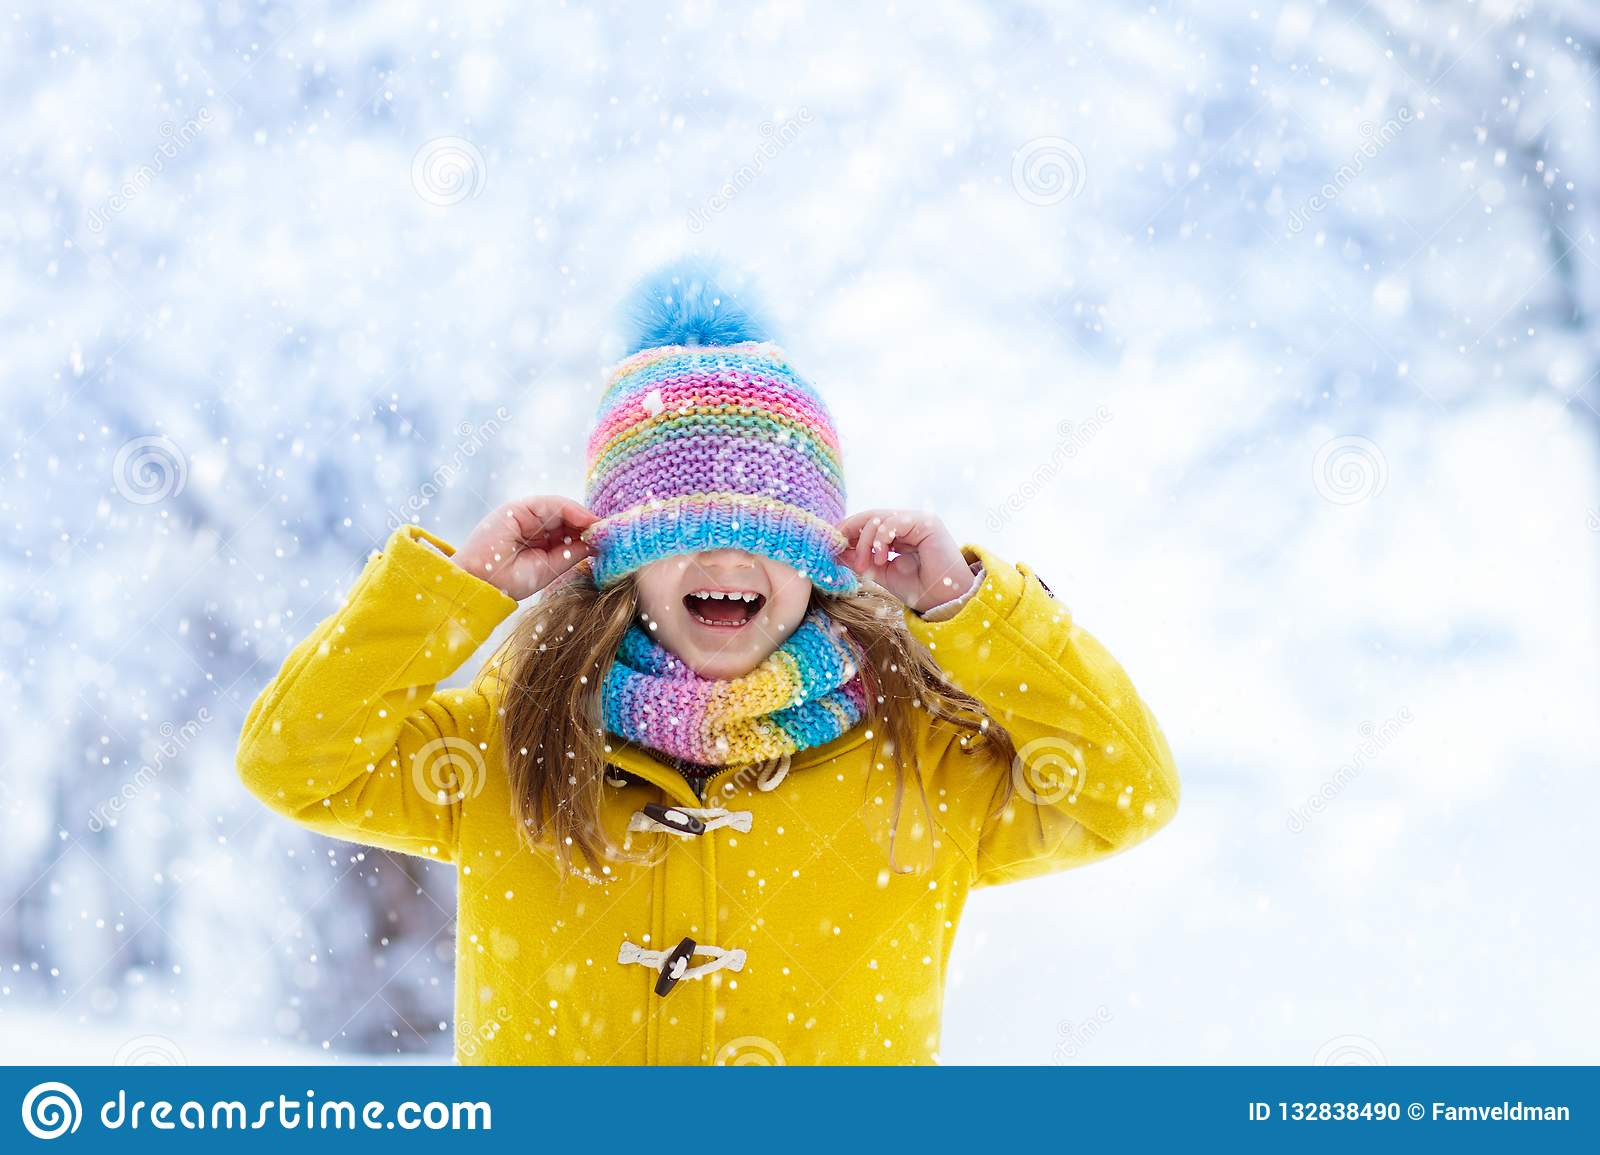 Child playing in snow on Christmas. Kids in winter